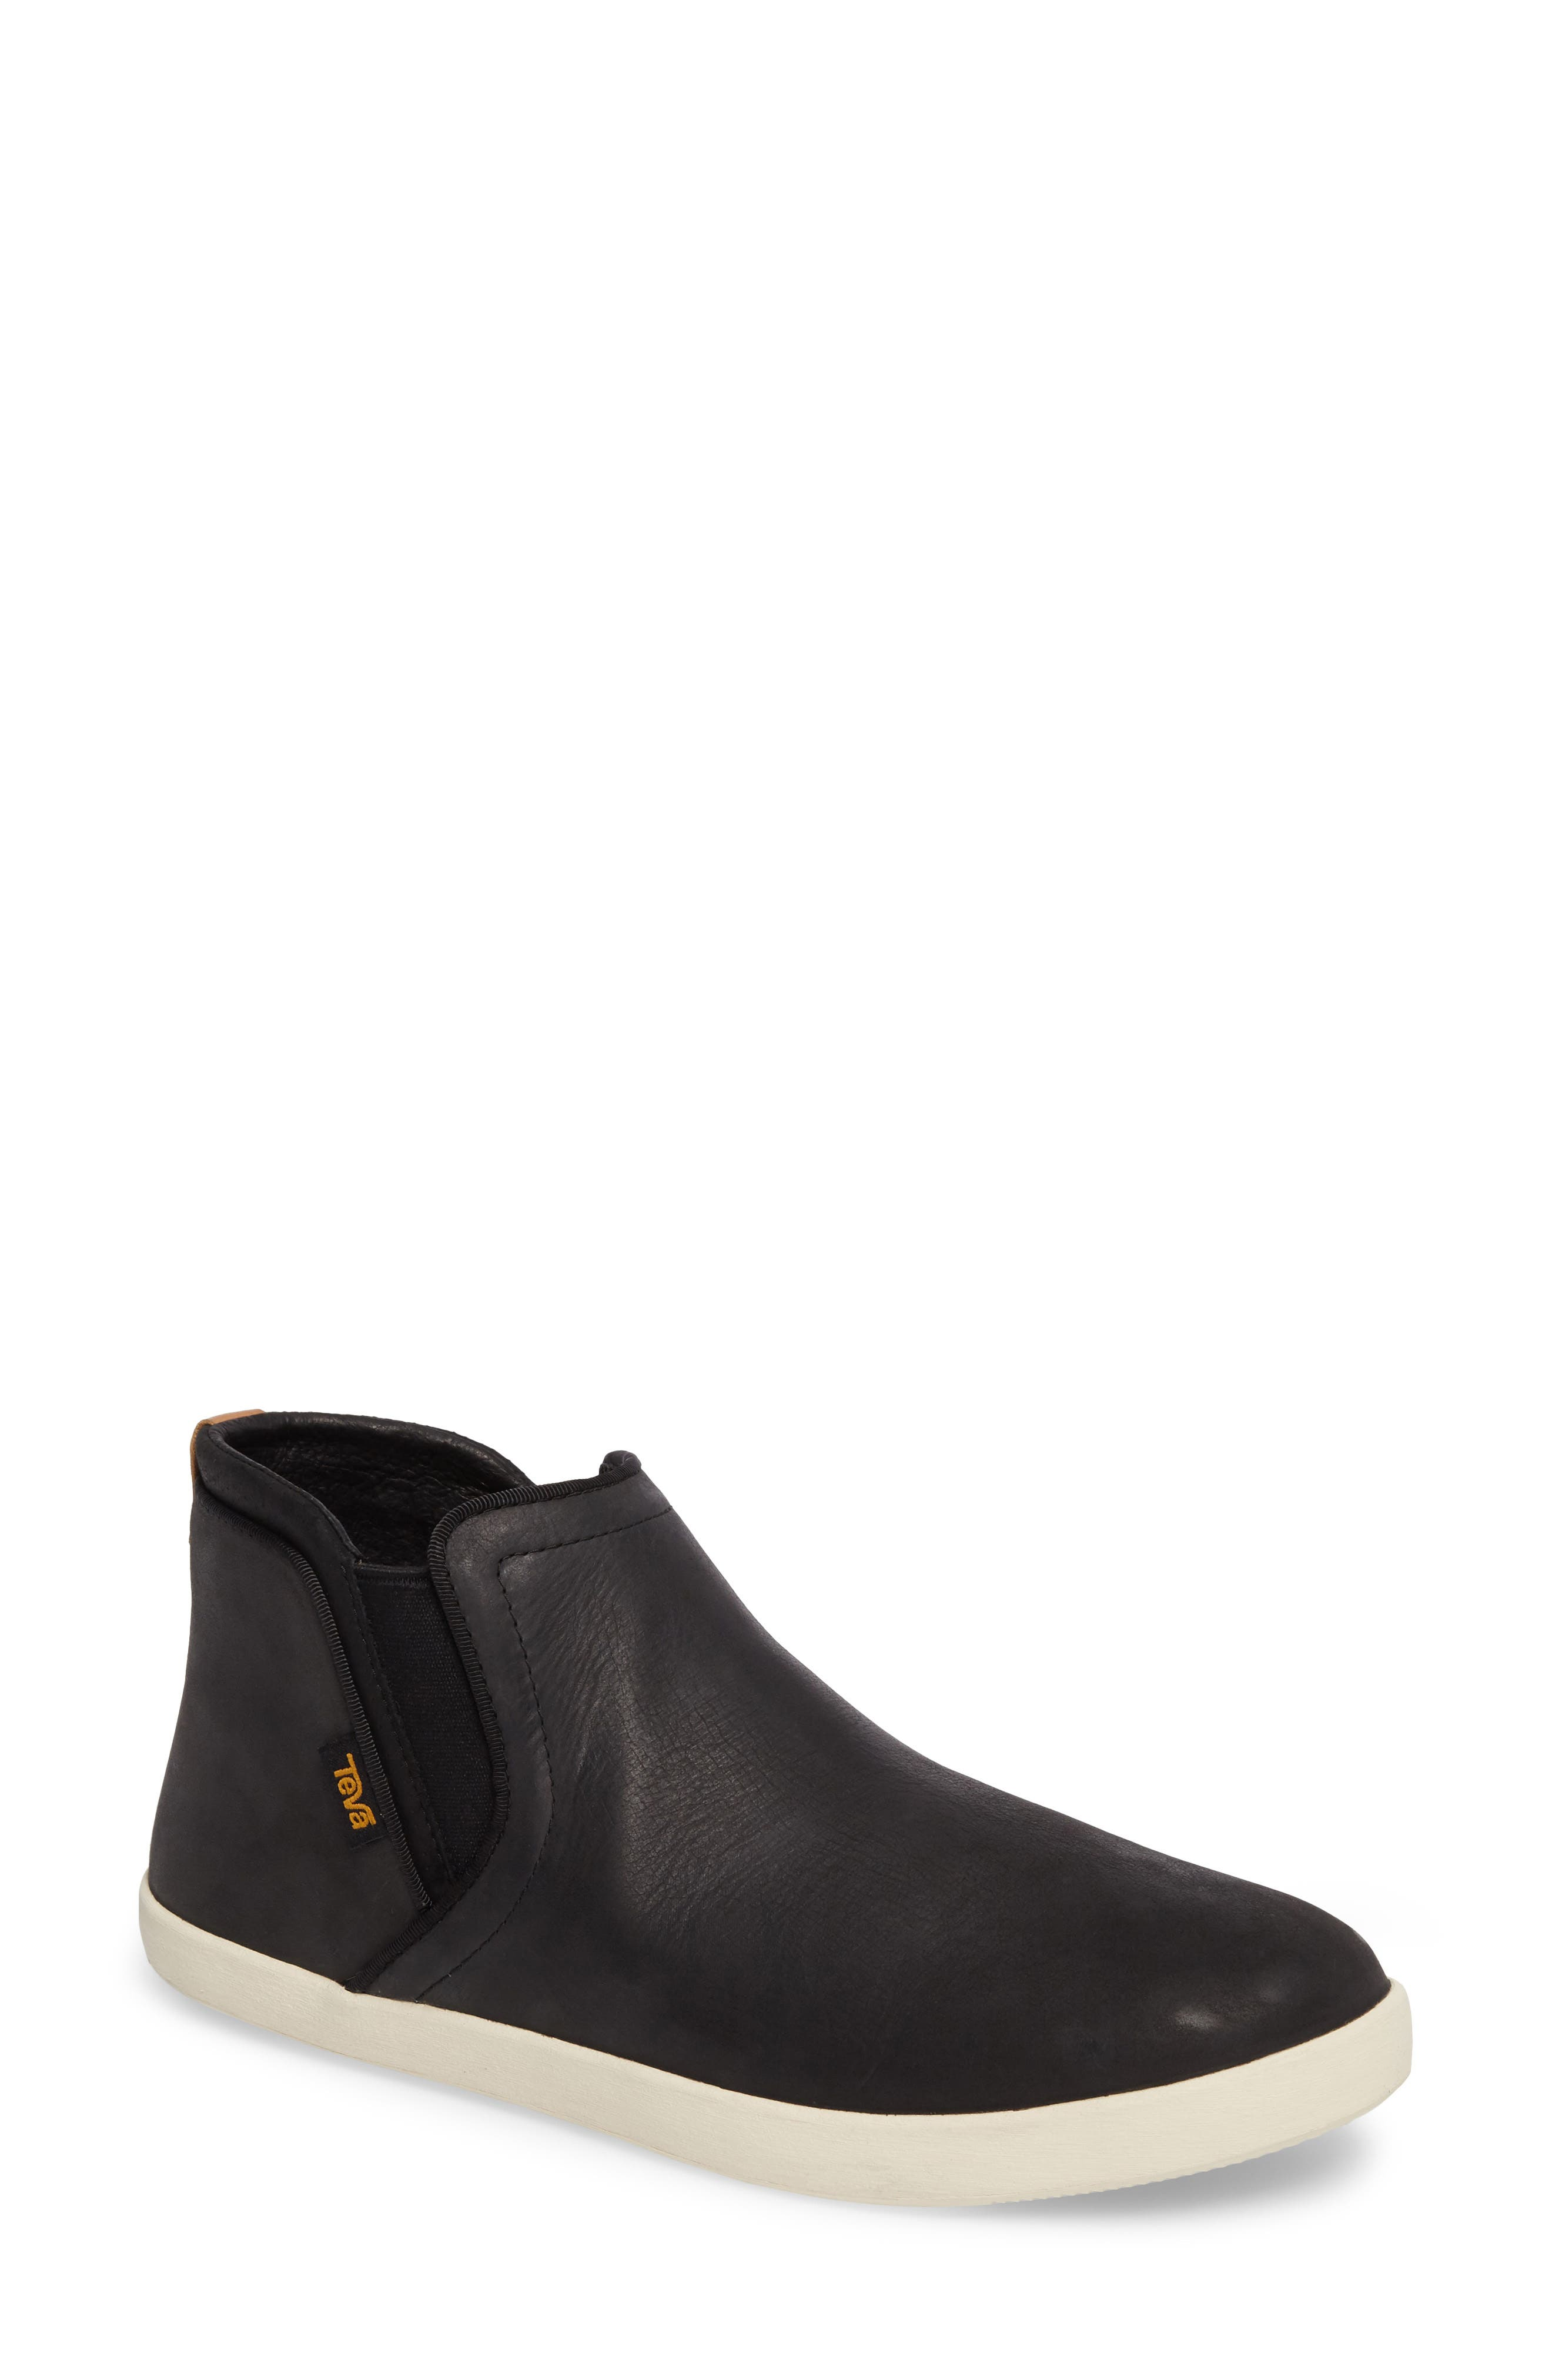 Willow Chelsea Sneaker,                         Main,                         color, Black Leather